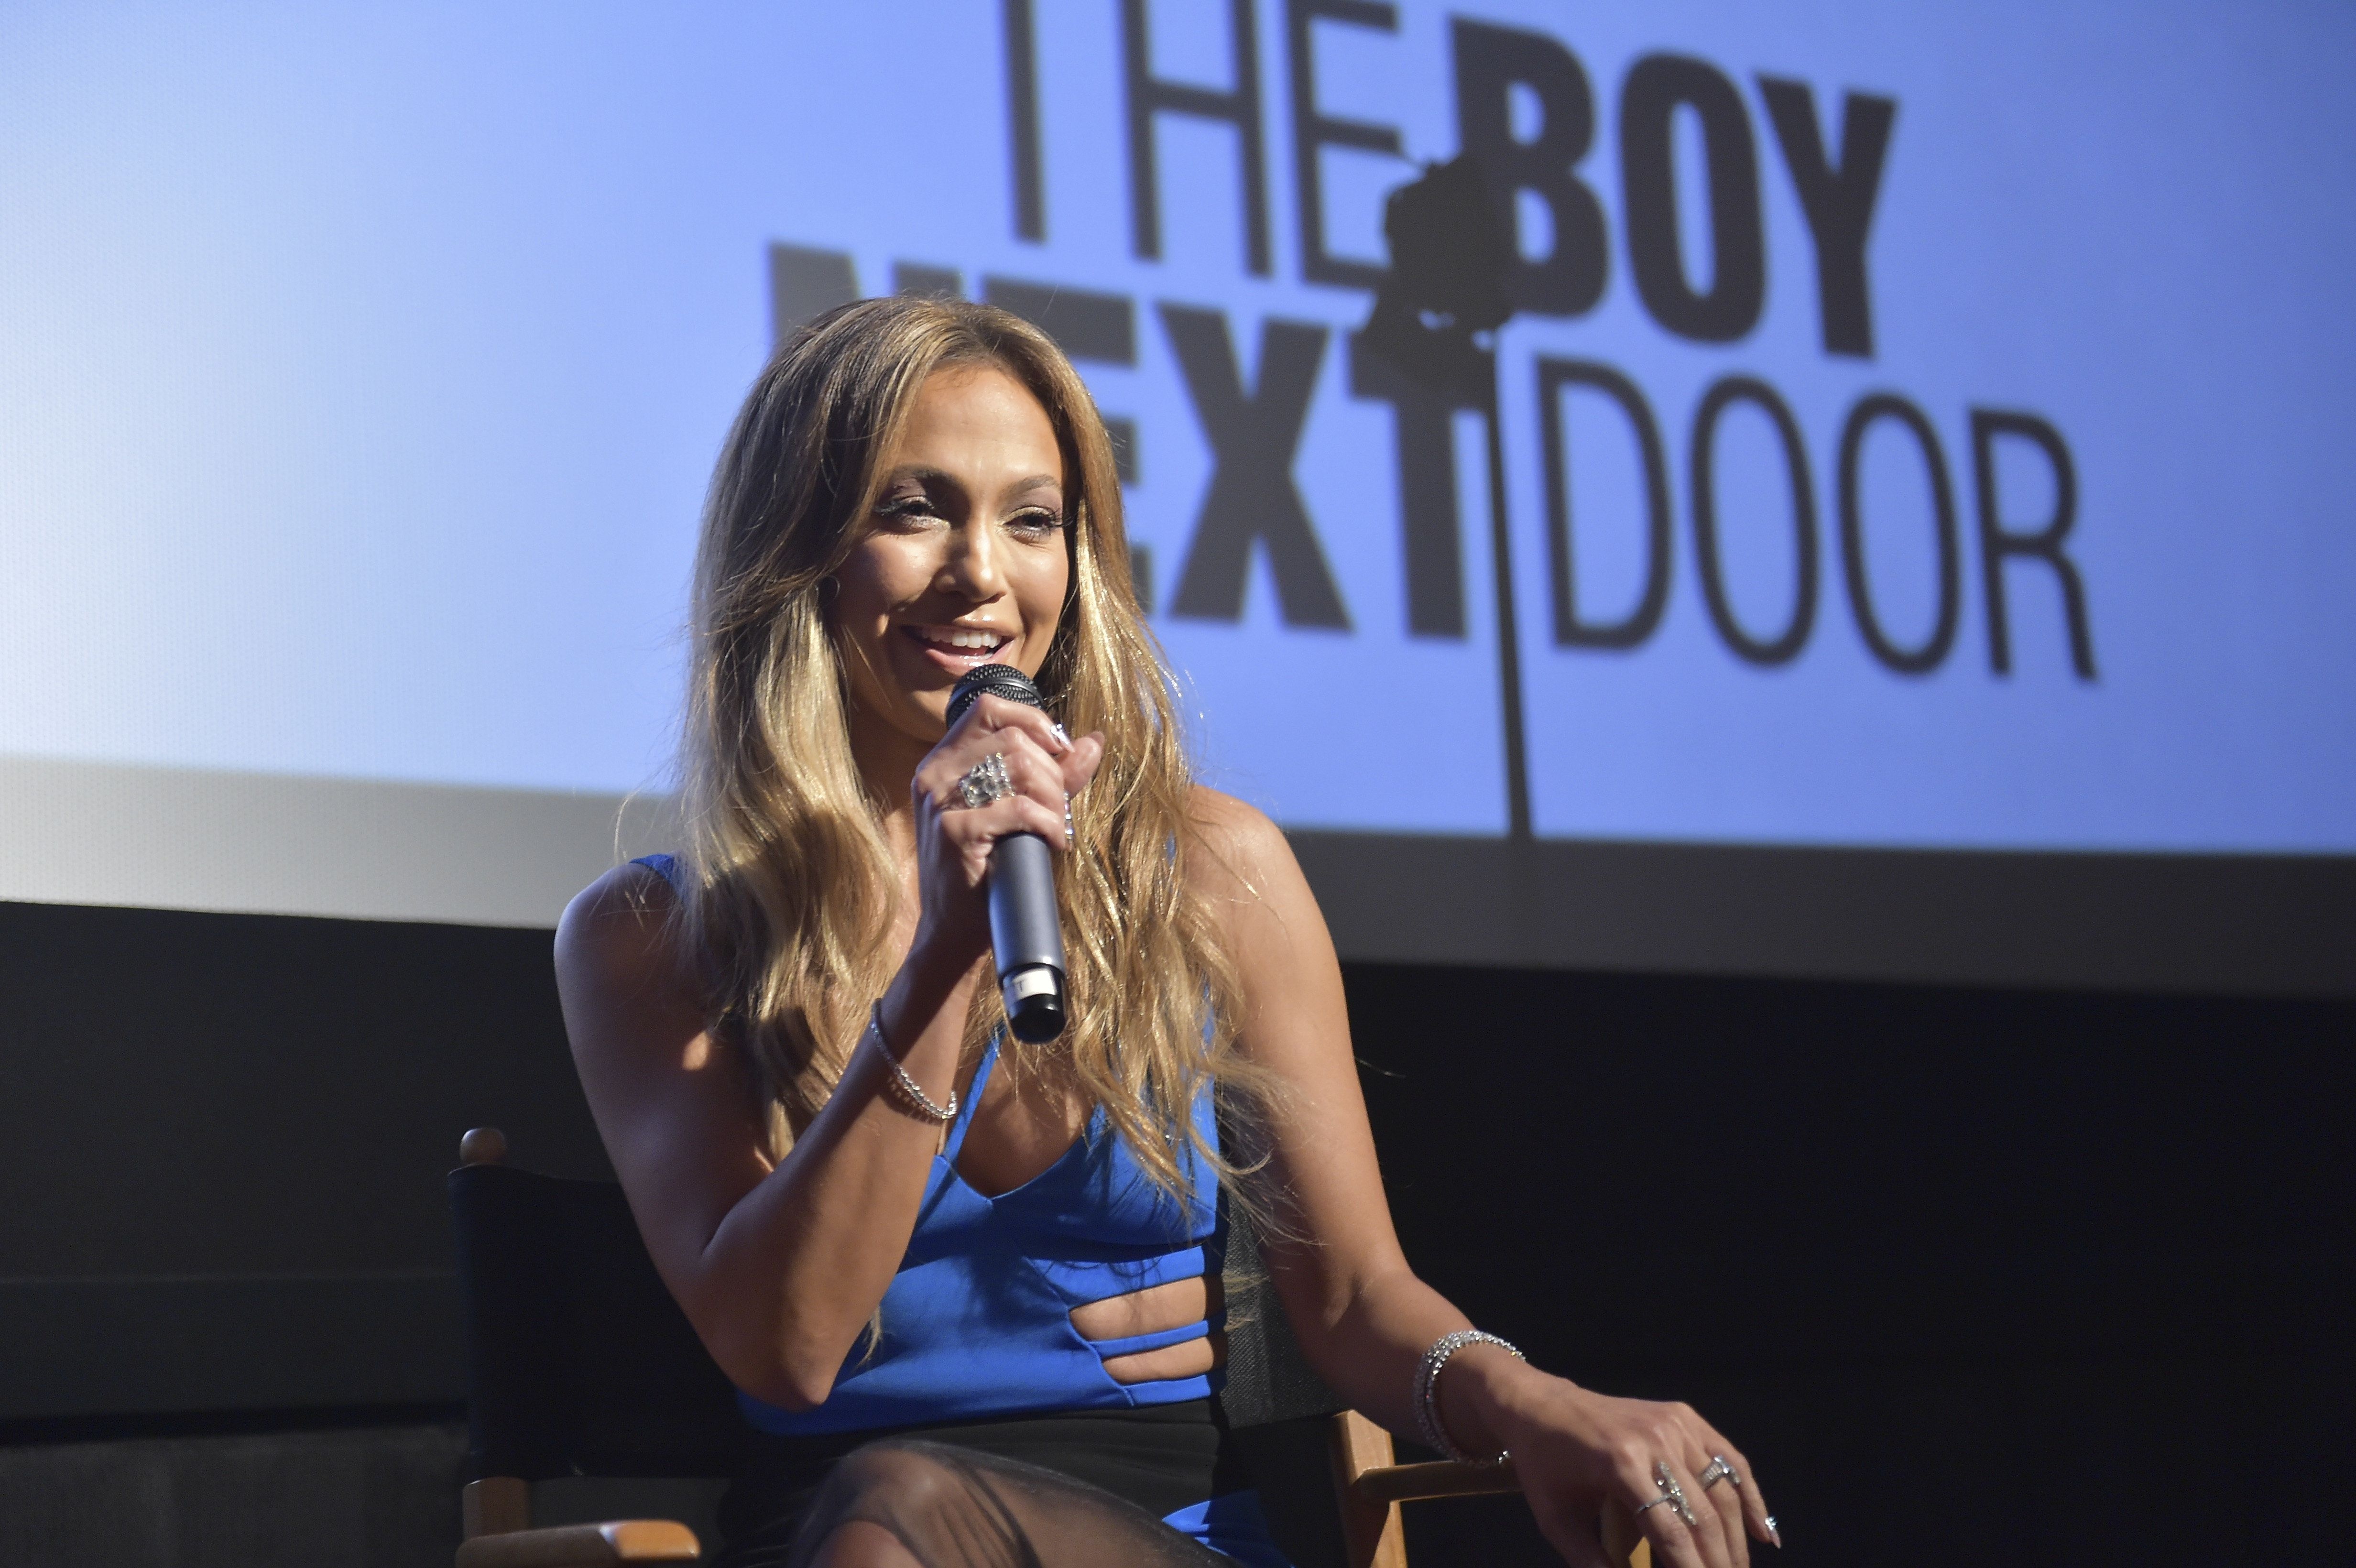 MIAMI, FL - JANUARY 13:  Jennifer Lopez speaks during a Q & A session following the 'The Boy Next Door' Miami VIP Screening at Dolphin Mall on January 13, 2015 in Miami, Florida.  (Photo by Gustavo Caballero/Getty Images for Universal Pictures)